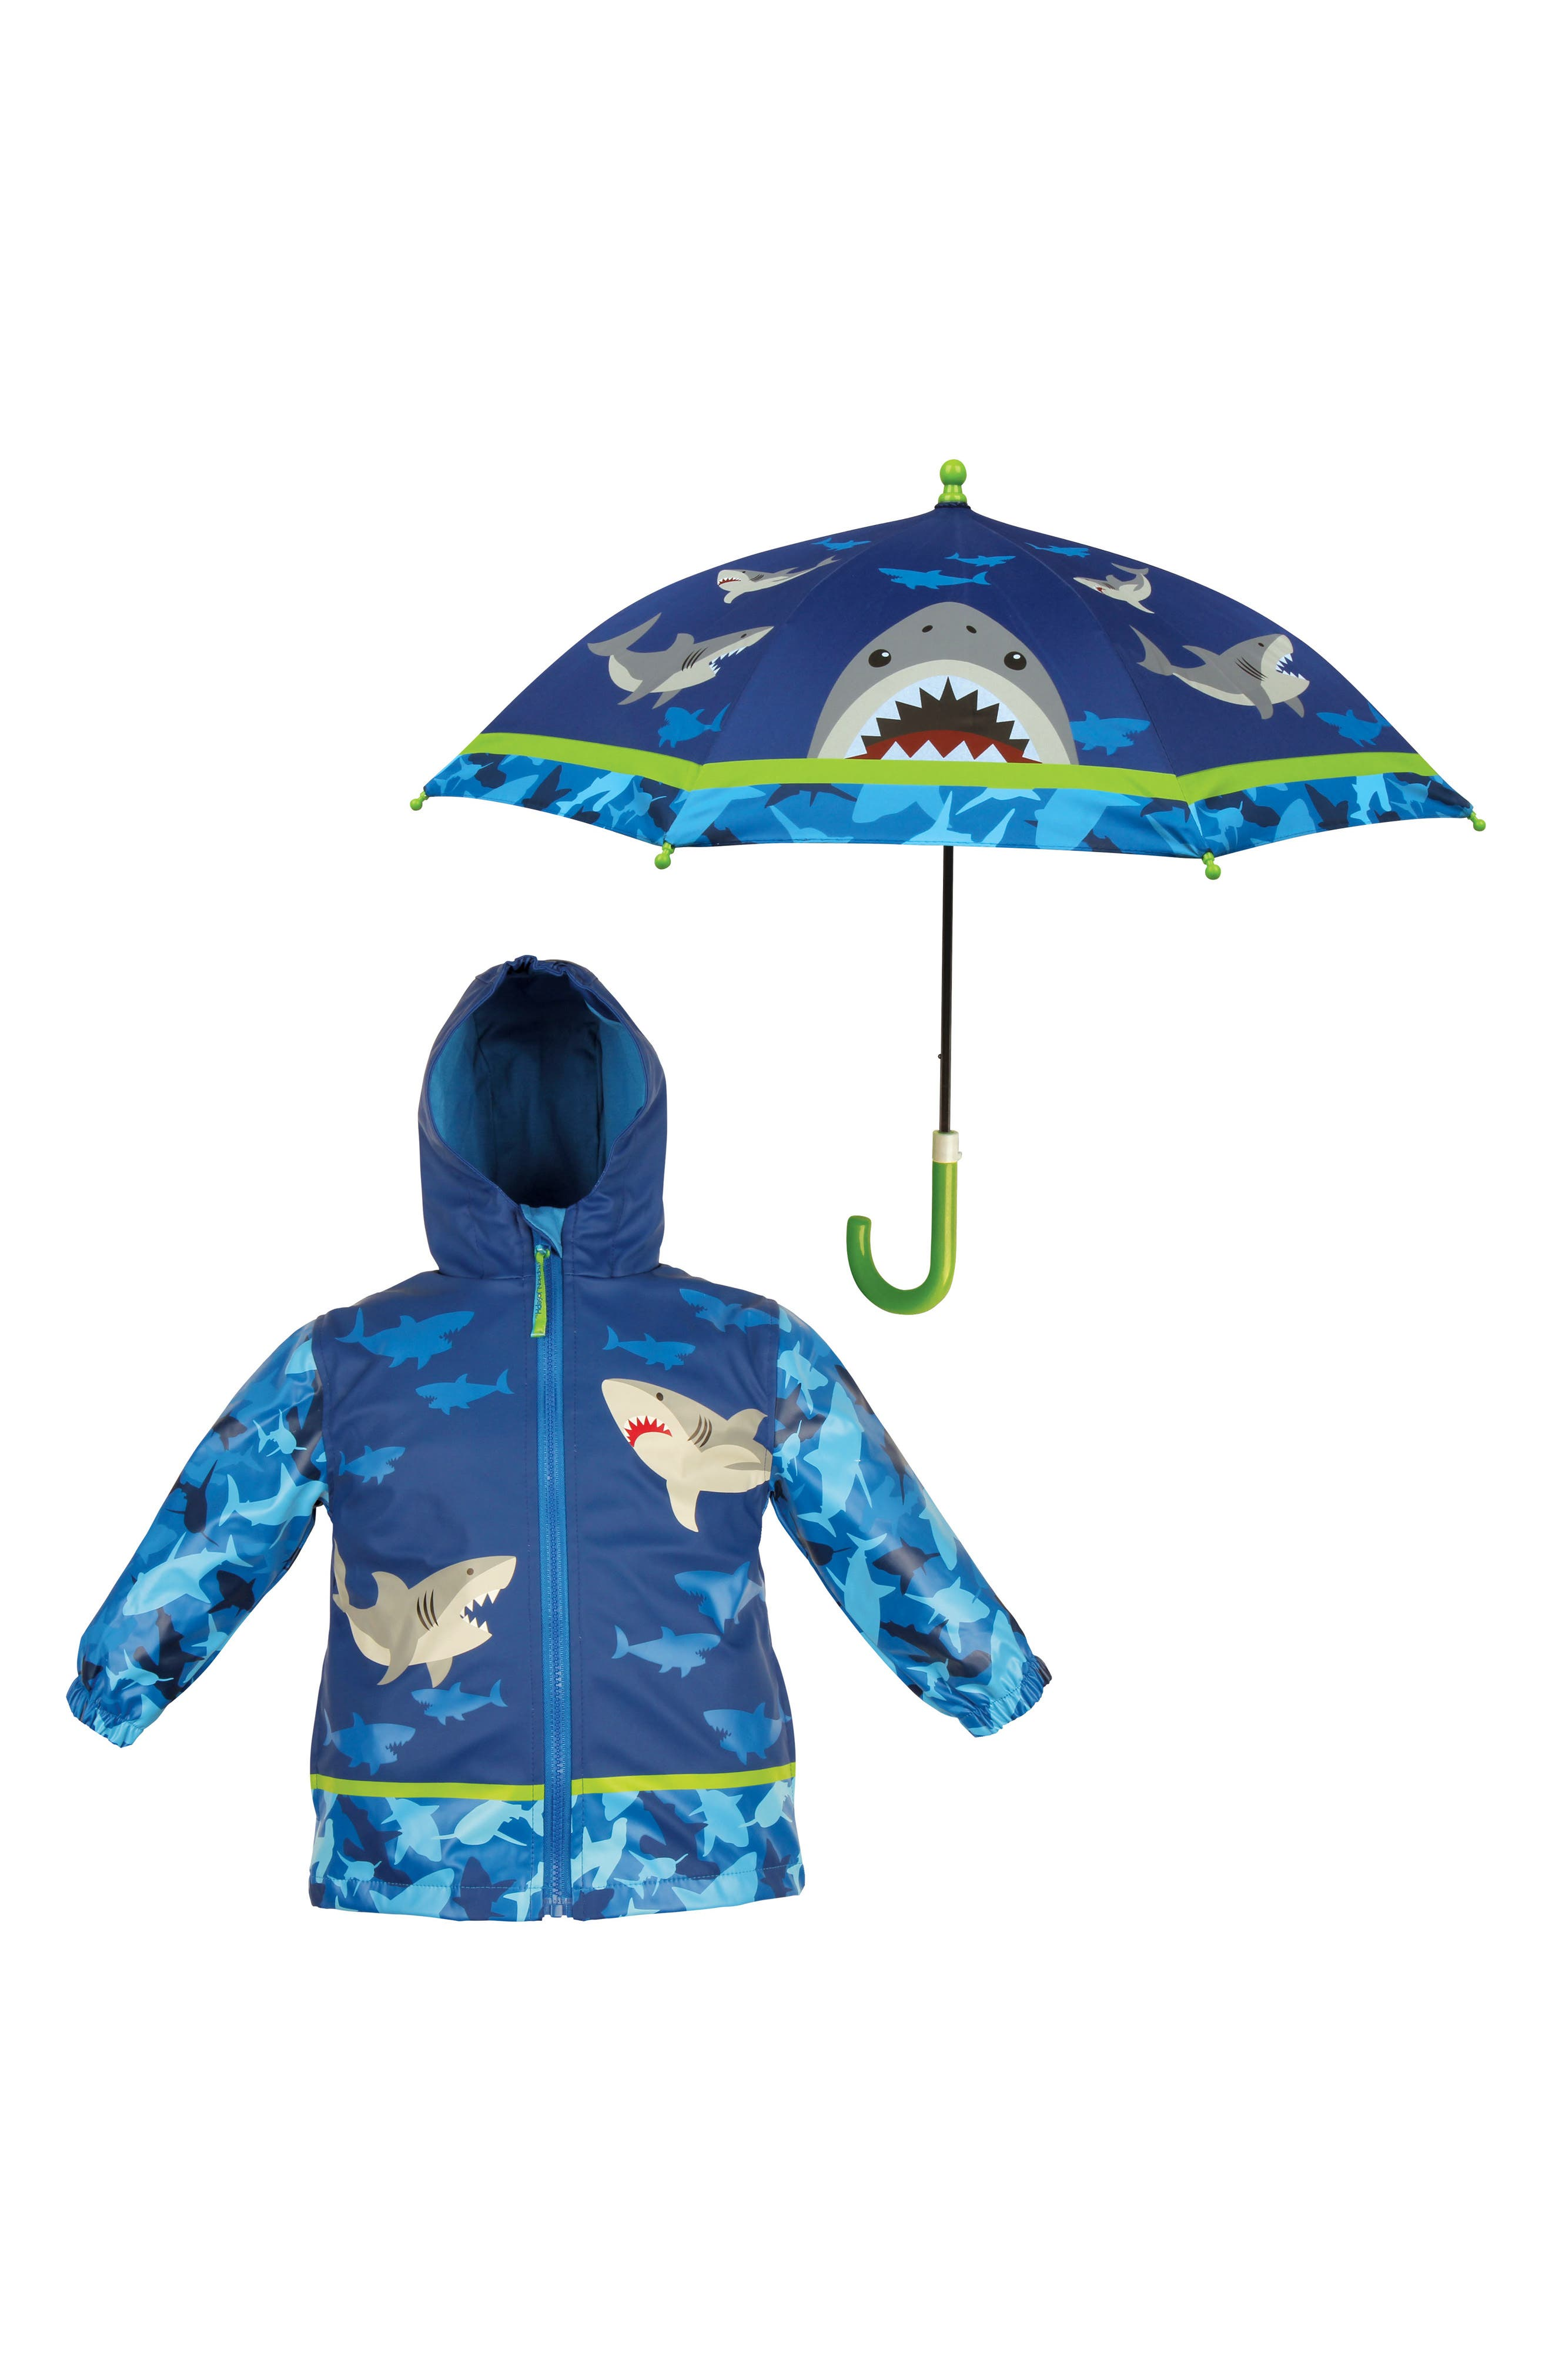 Shark Raincoat & Umbrella Set,                             Main thumbnail 1, color,                             Shark